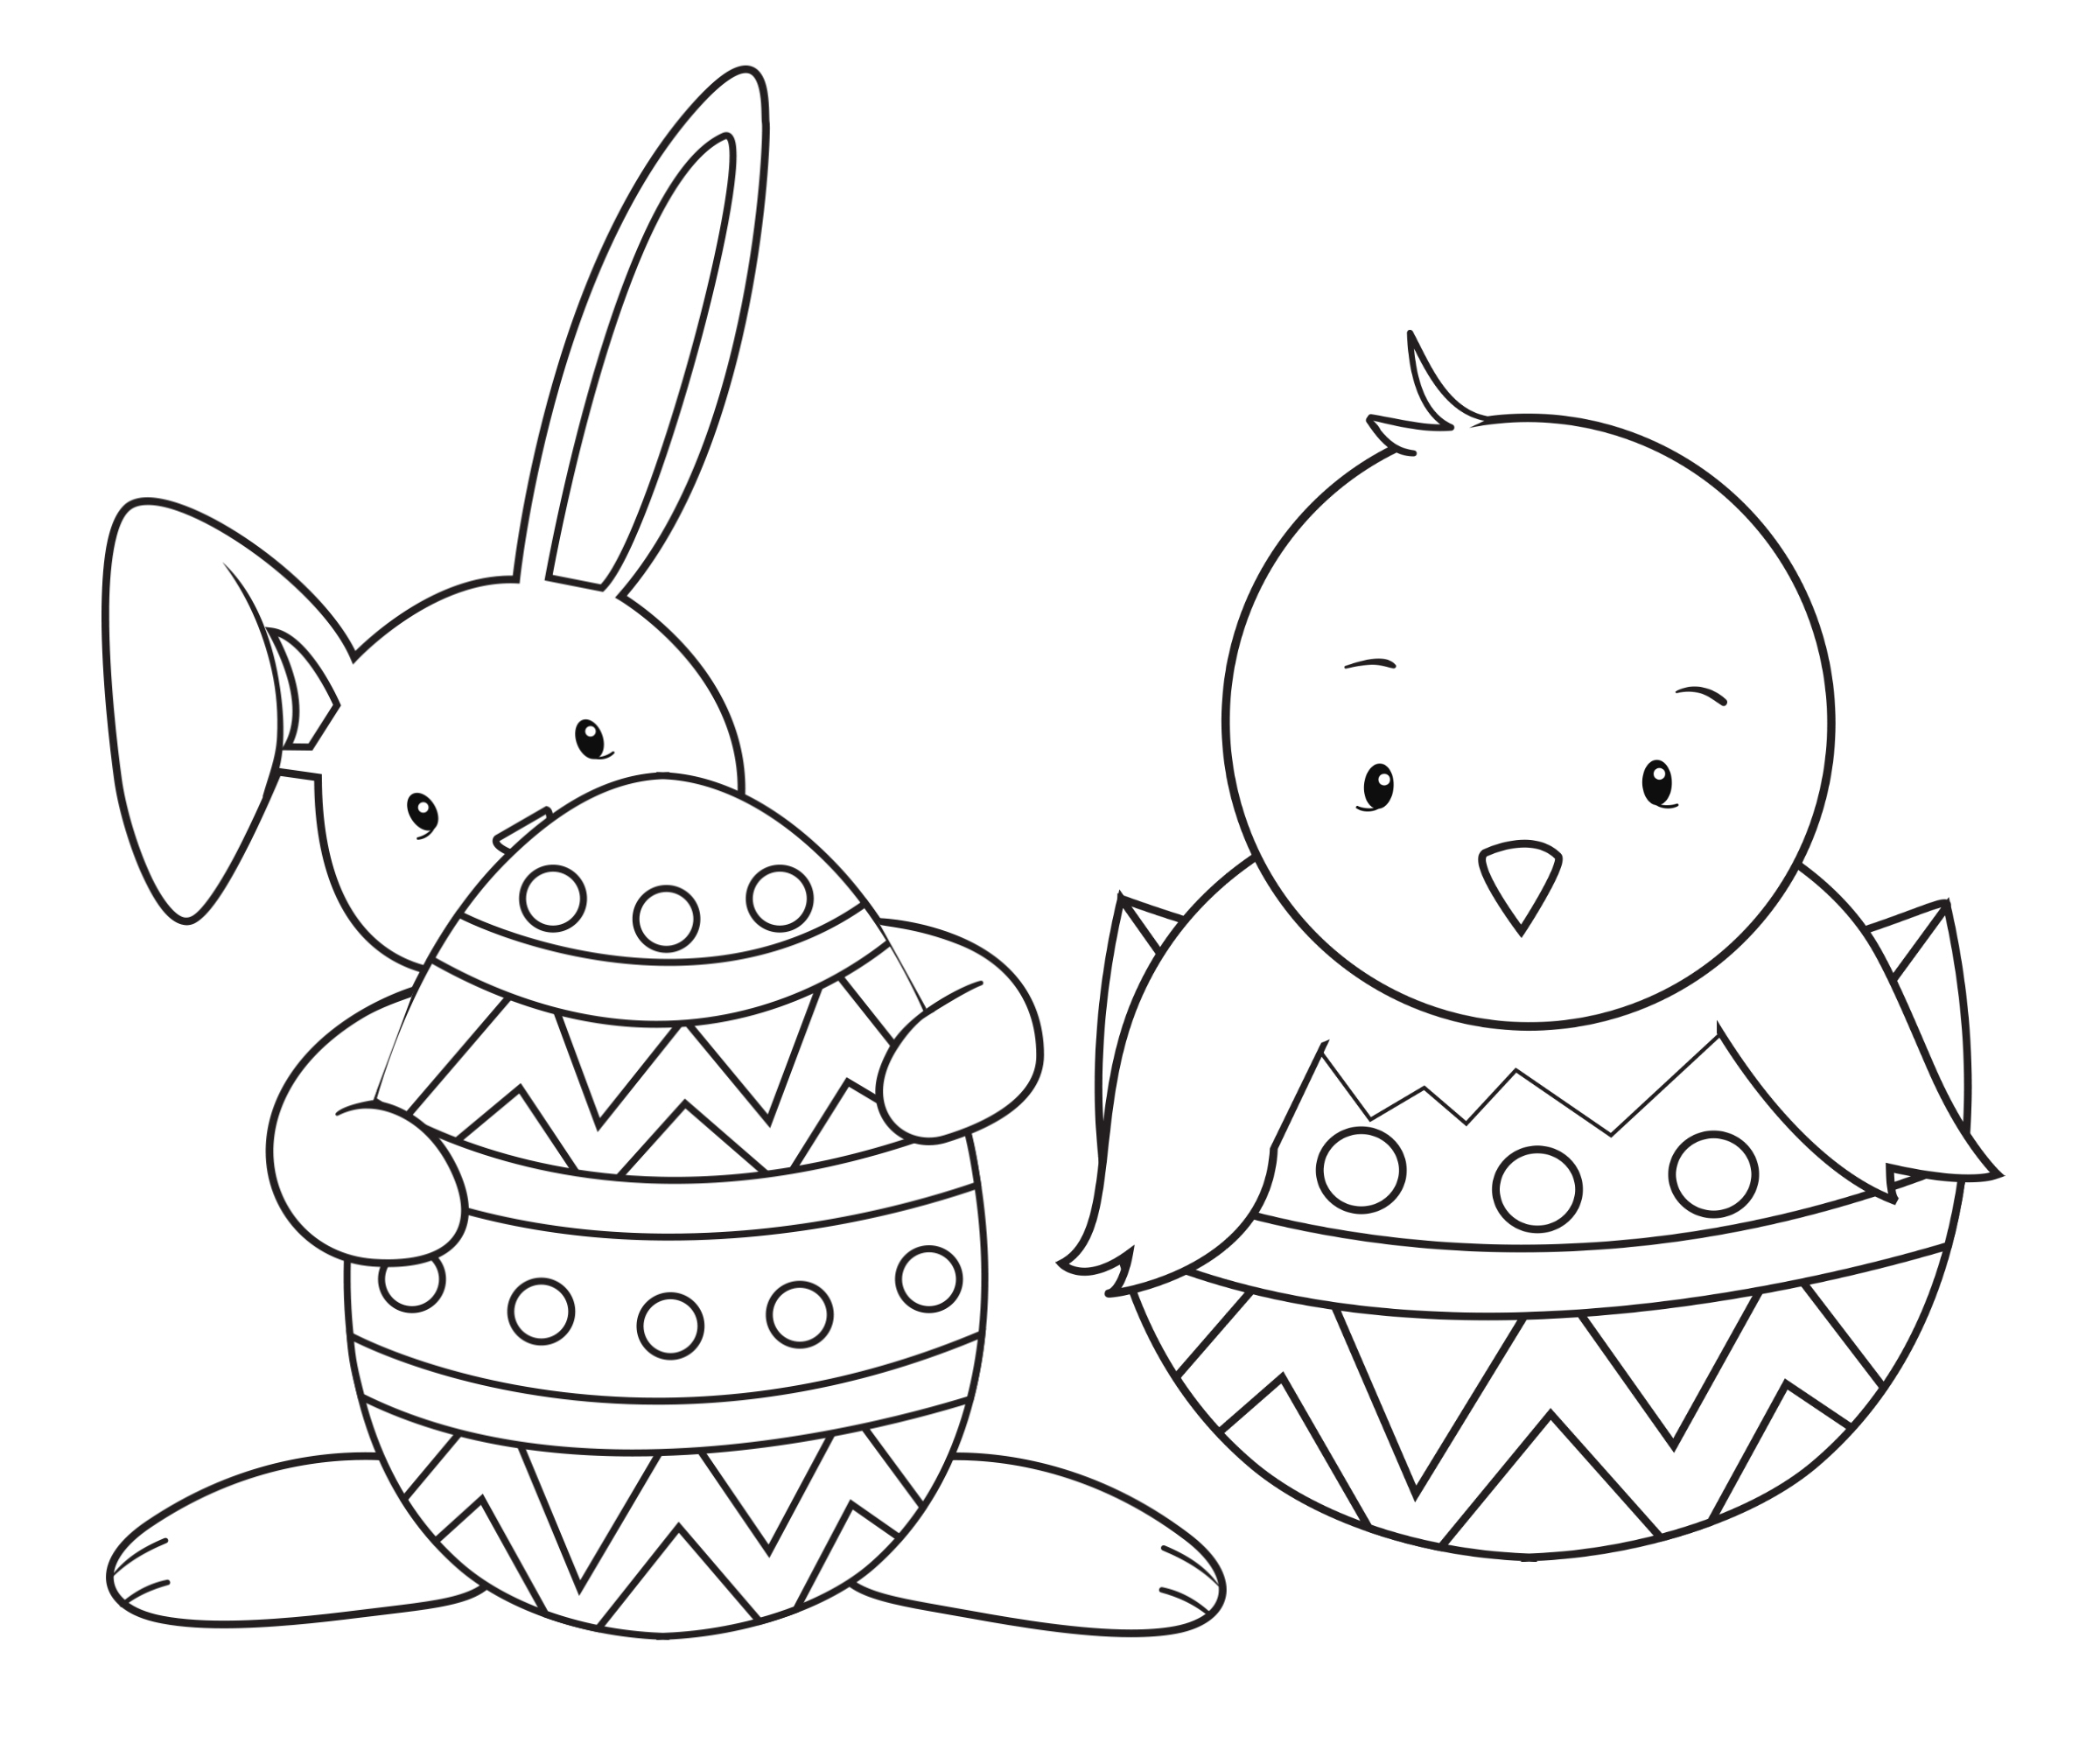 Gorgeous Easter Color Pages Coloring for Good Easter Coloring Pages Gallery Of Easter Egg Designs Coloring Pages to Print